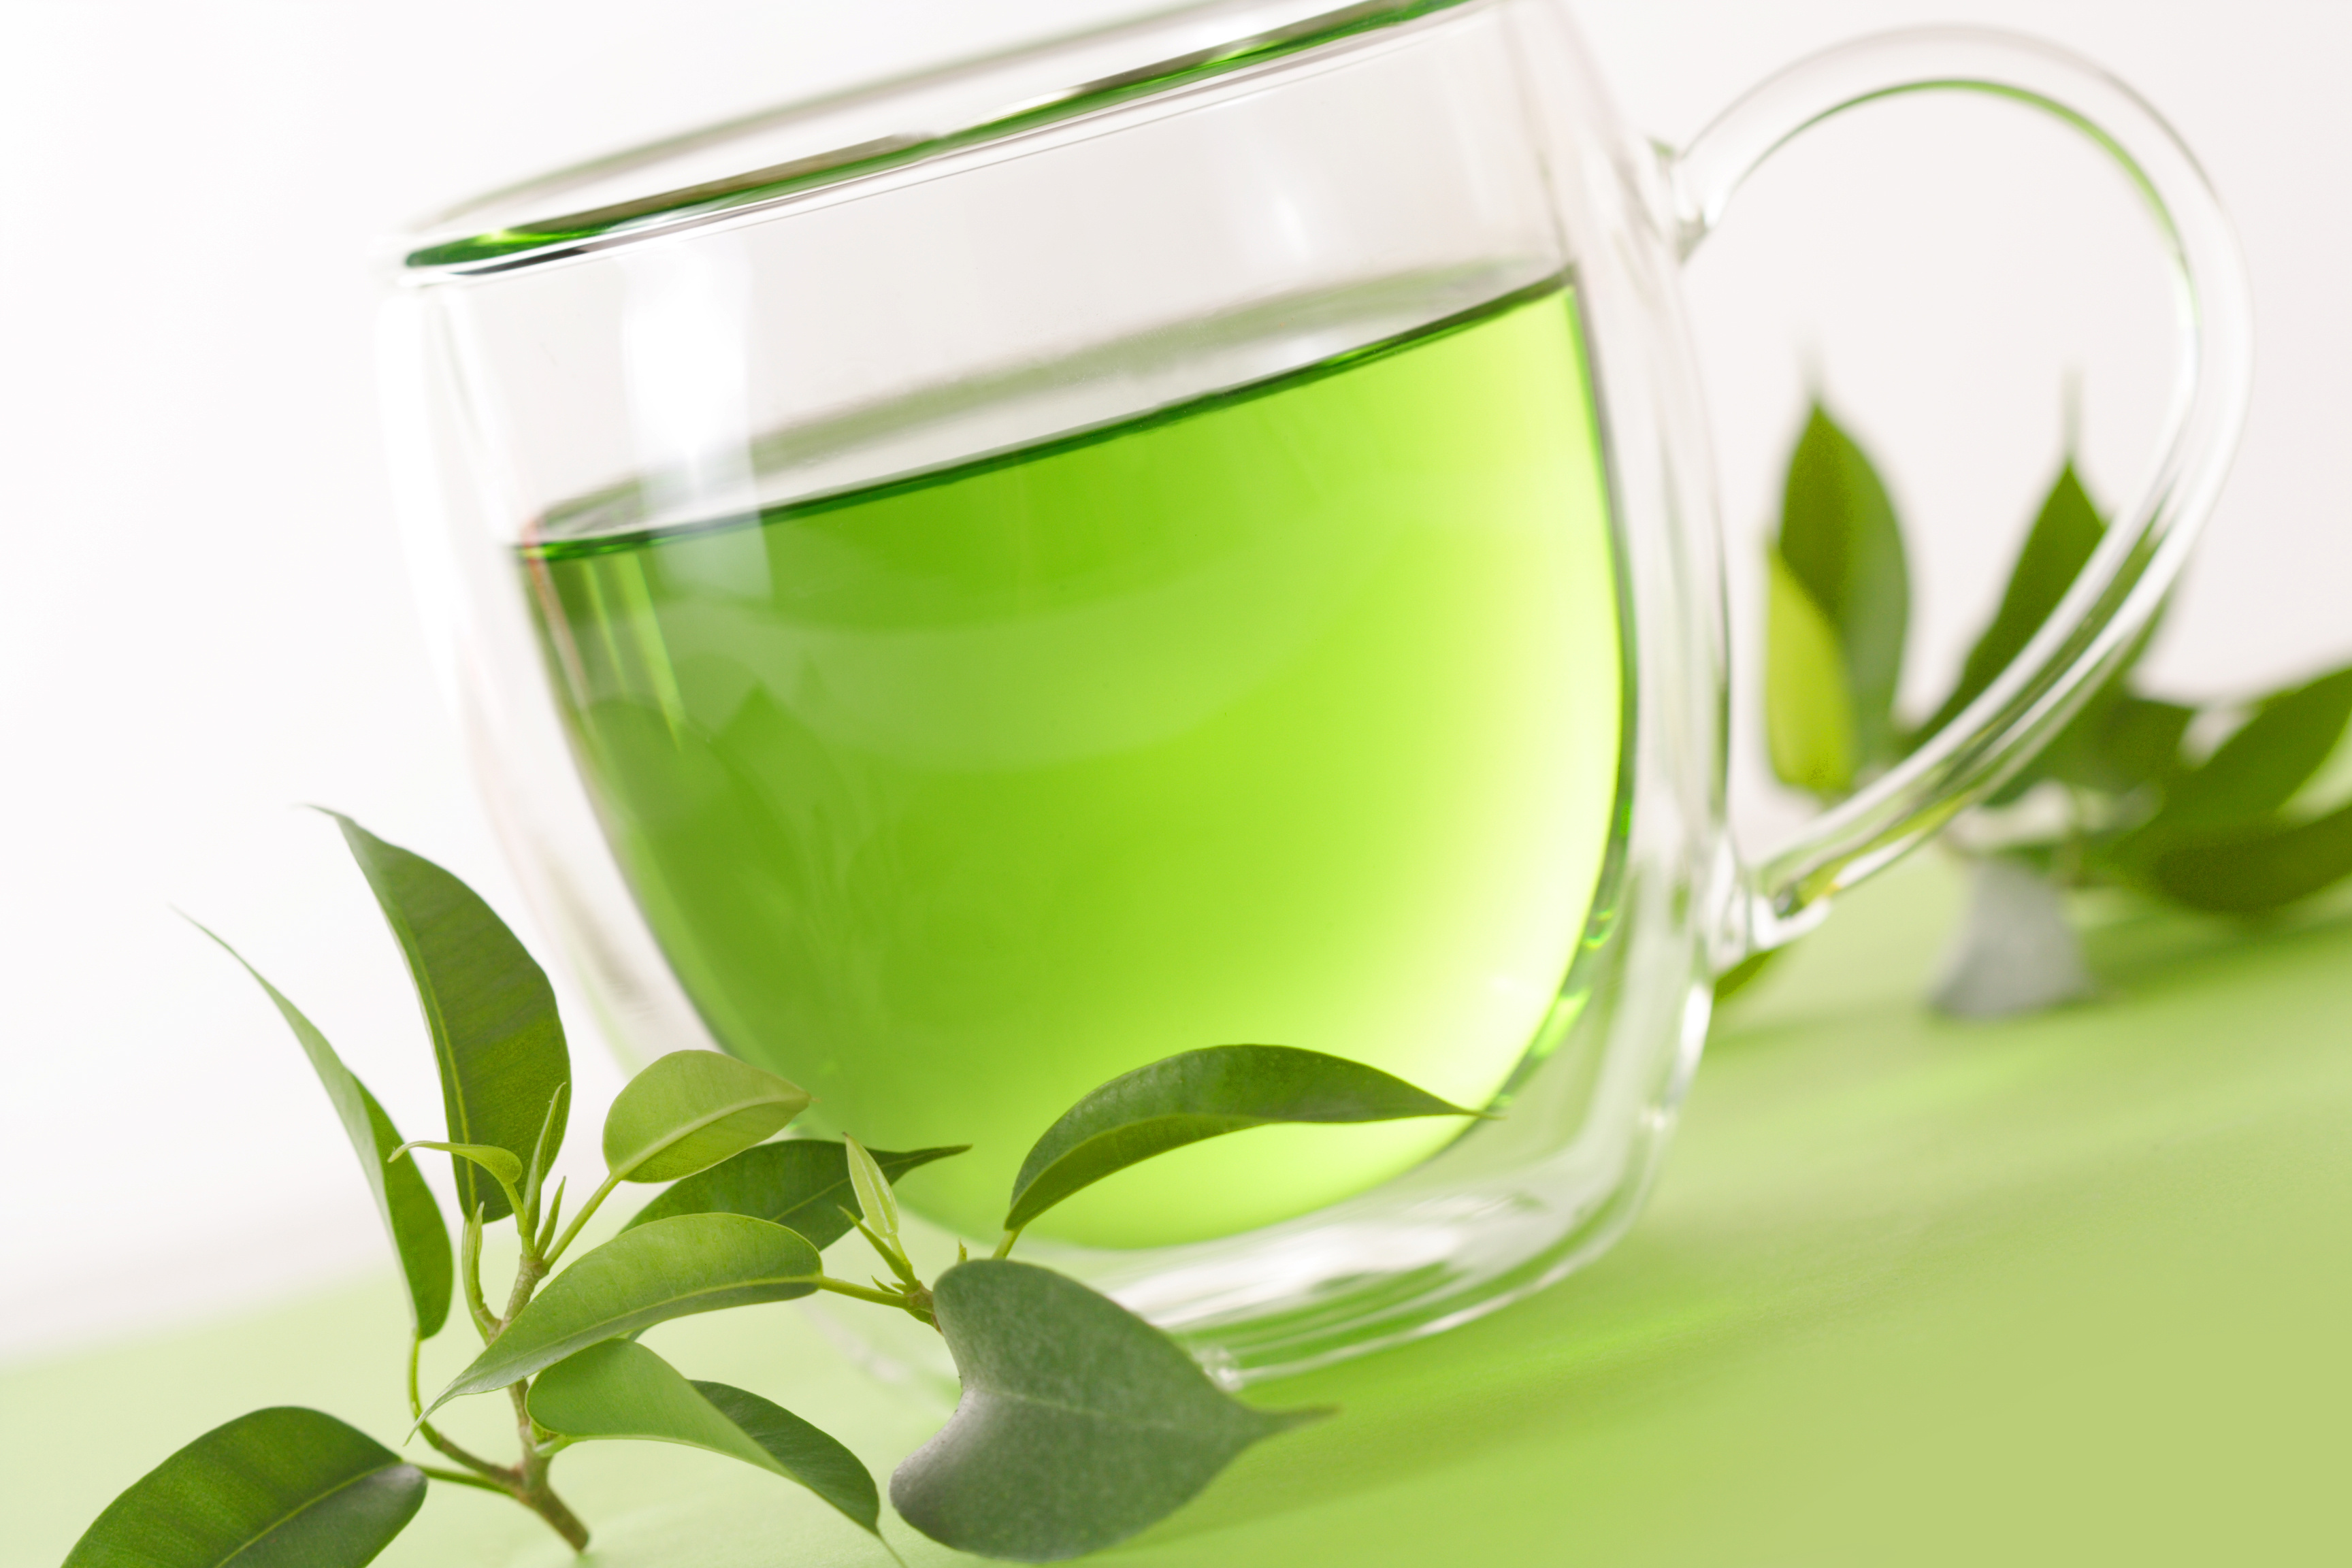 The Top 5 Proven Benefits of Green Tea (No. 5 is My Favorite)